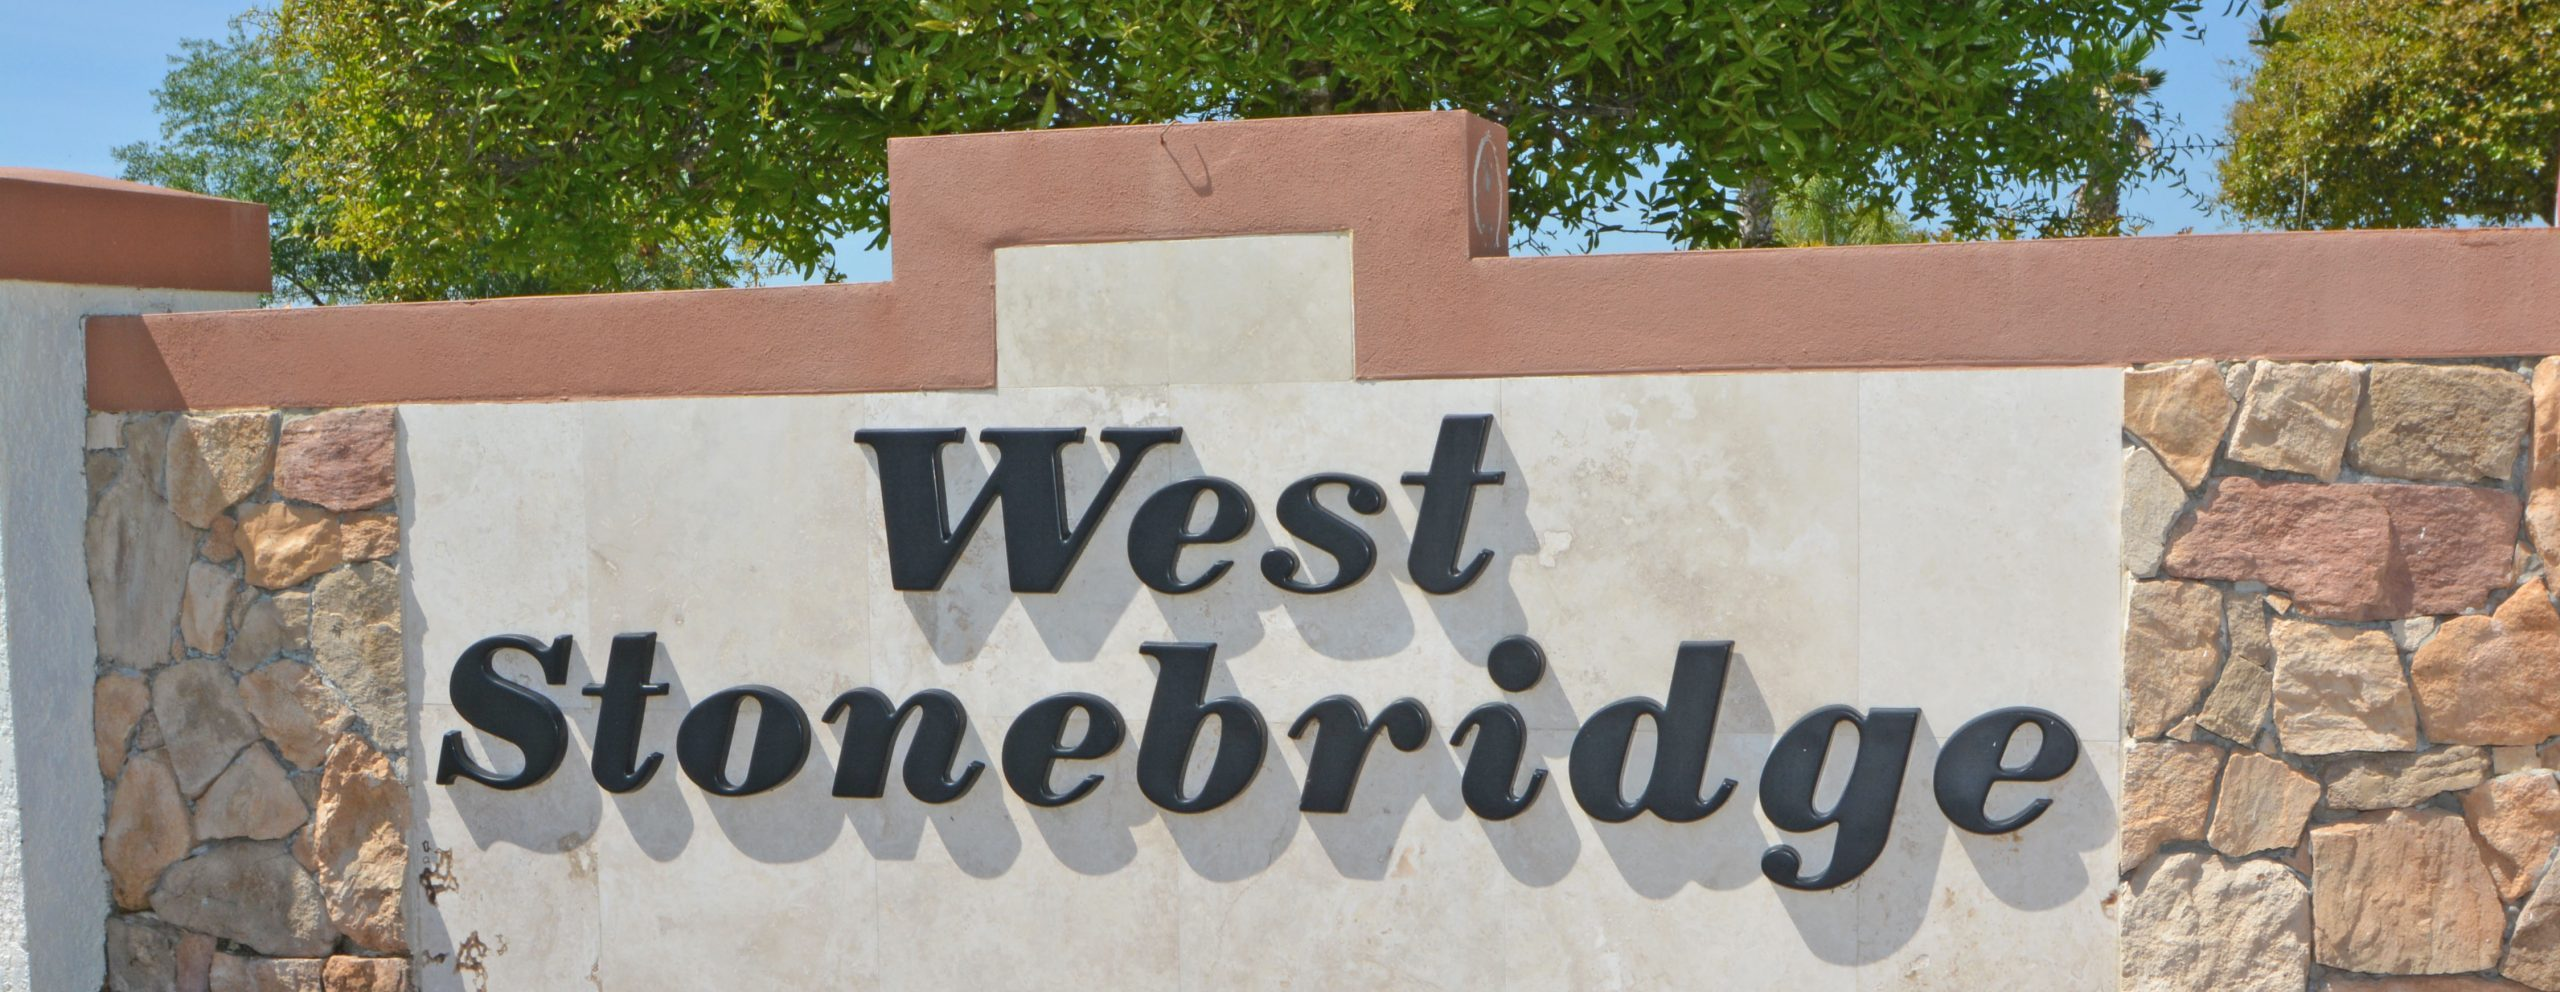 UPDATE: WEST STONEBRIDGE RENTAL VILLAS